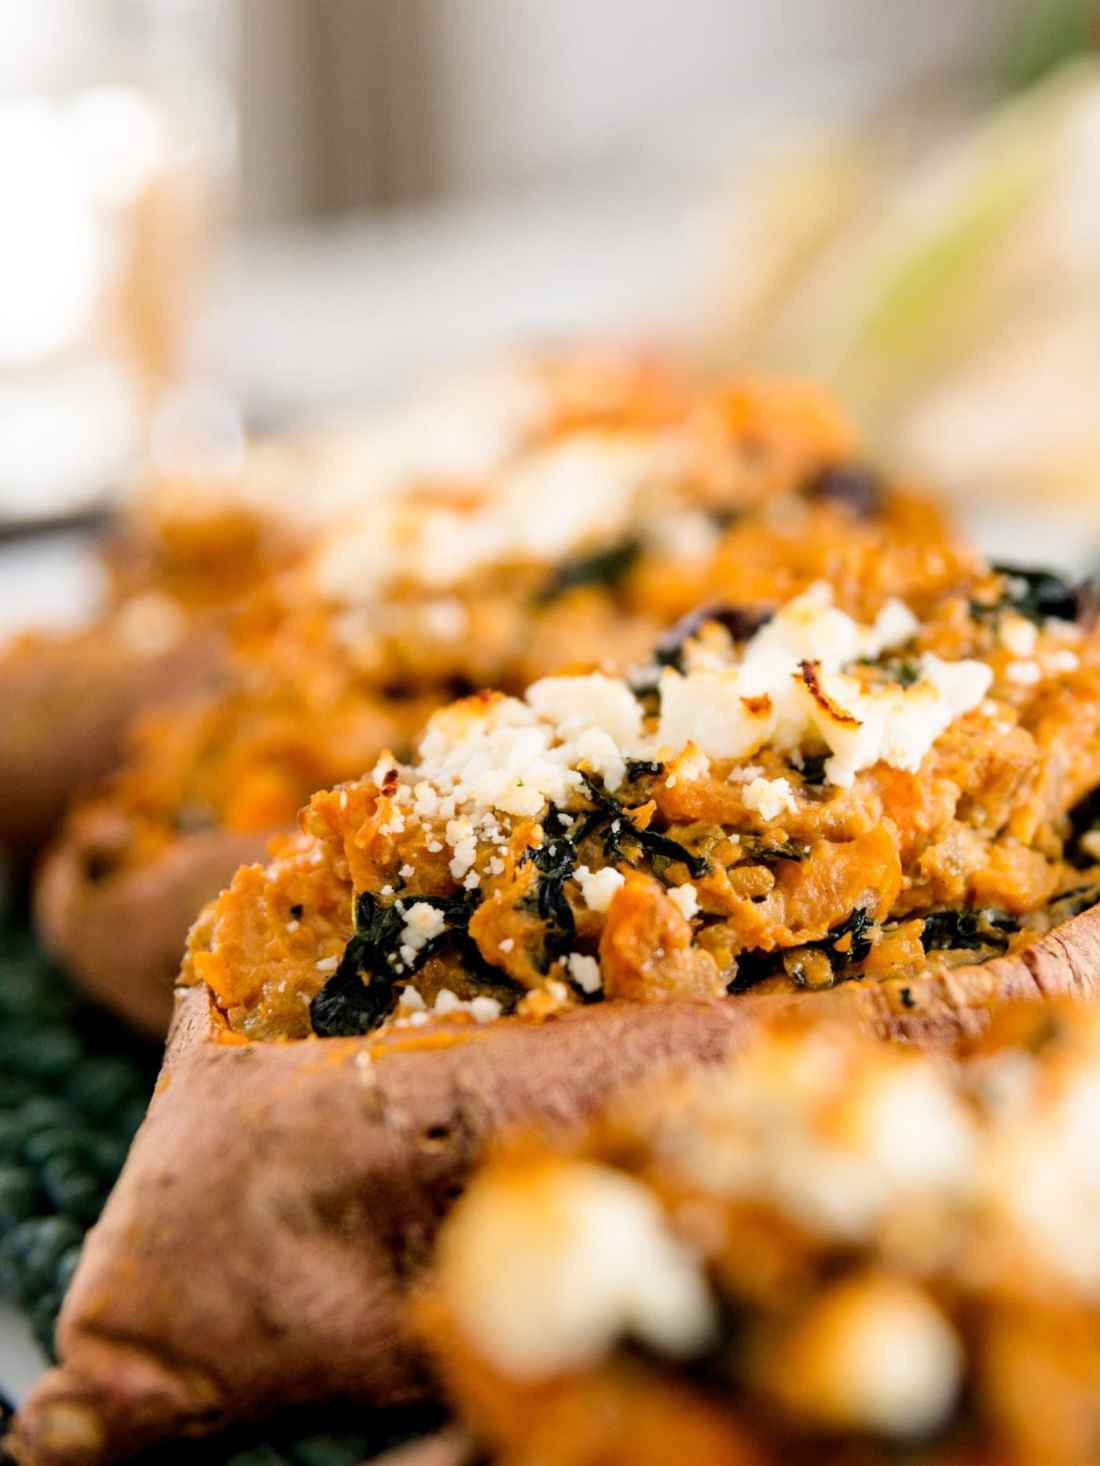 Twice baked sweet potatoes sprinkled with cheese and dotted with kale sitting on bed of kale with pumpkin in background on white surface